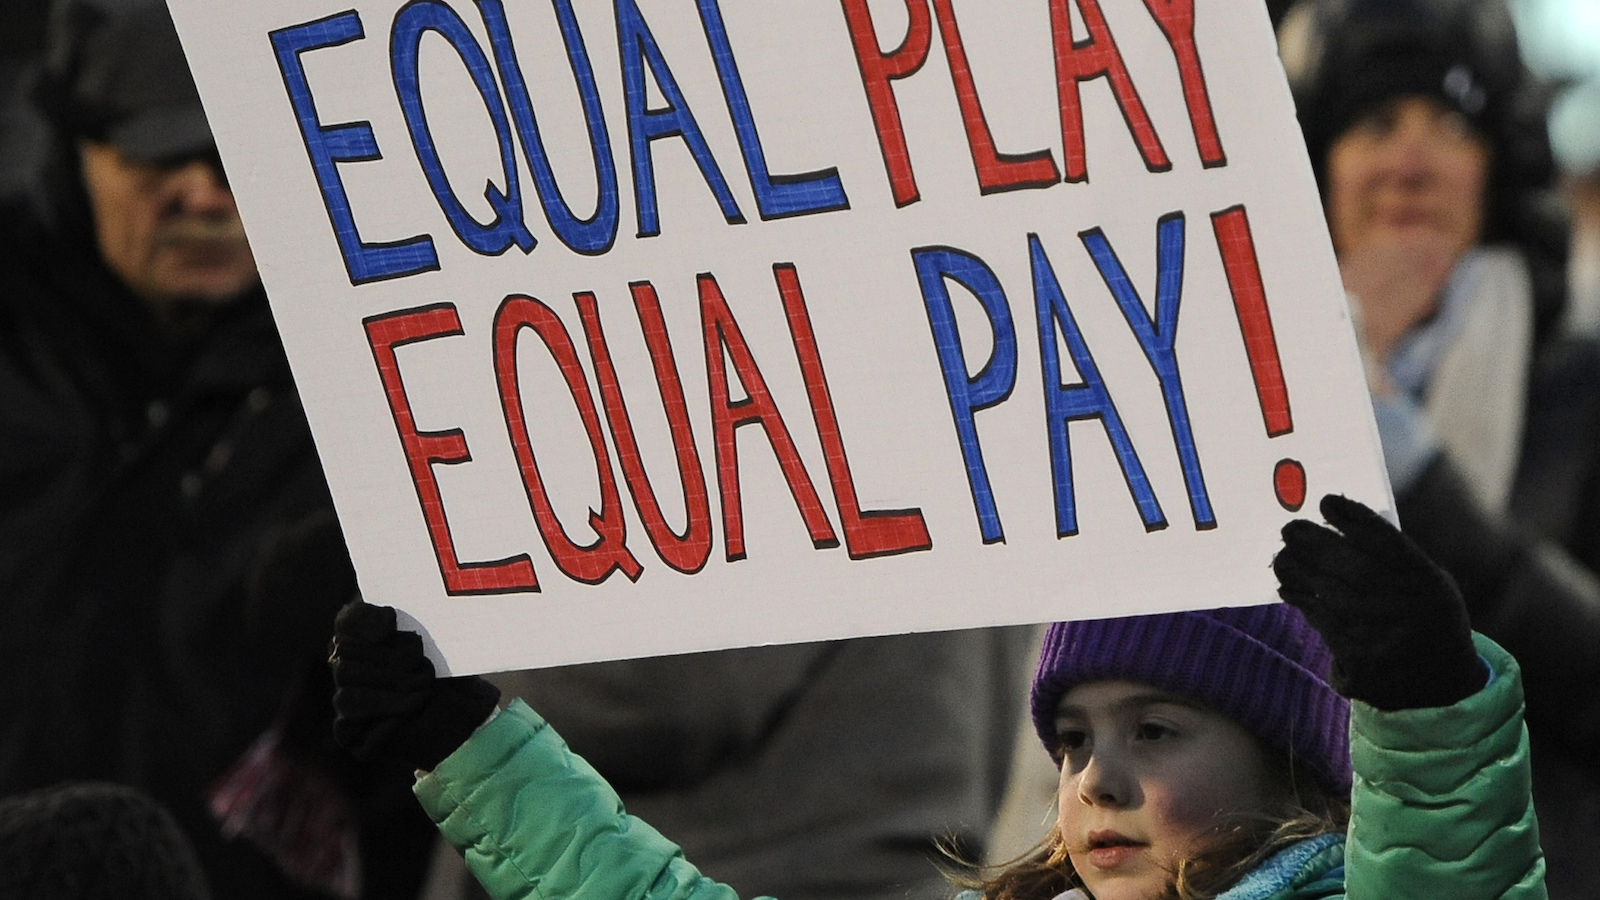 Women and pay raises